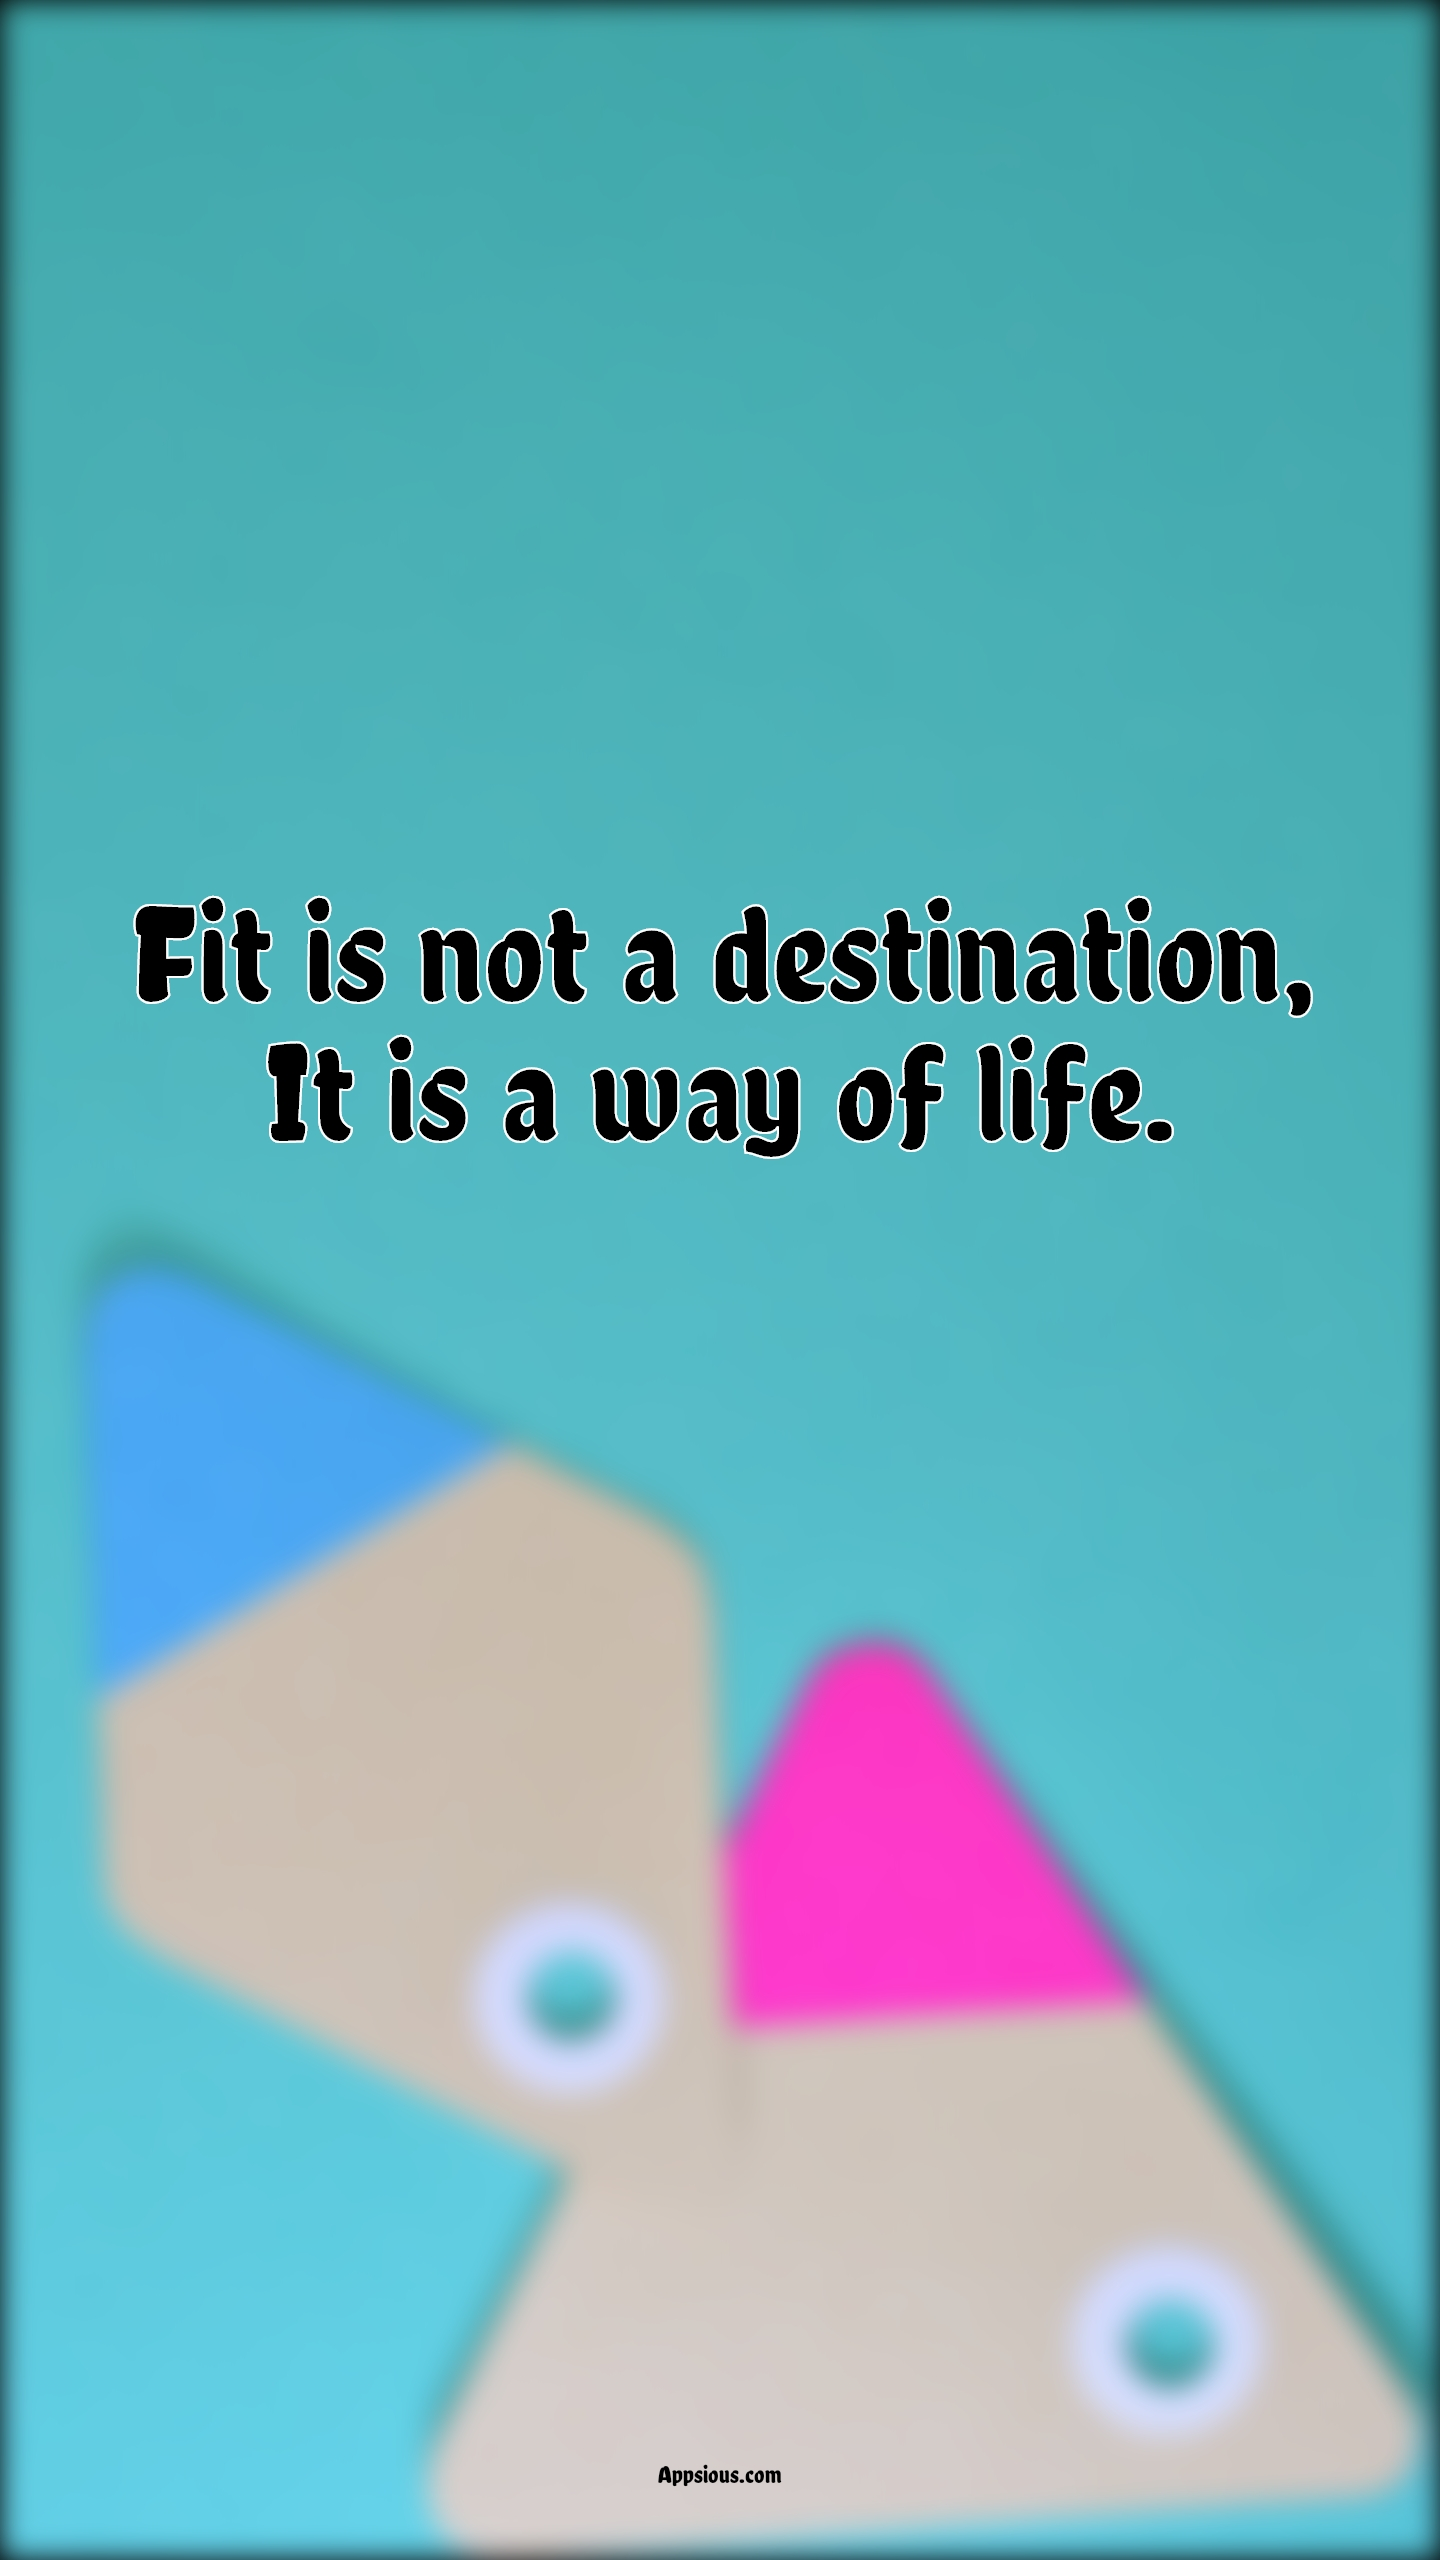 Fit is not a destination, It is a way of life.